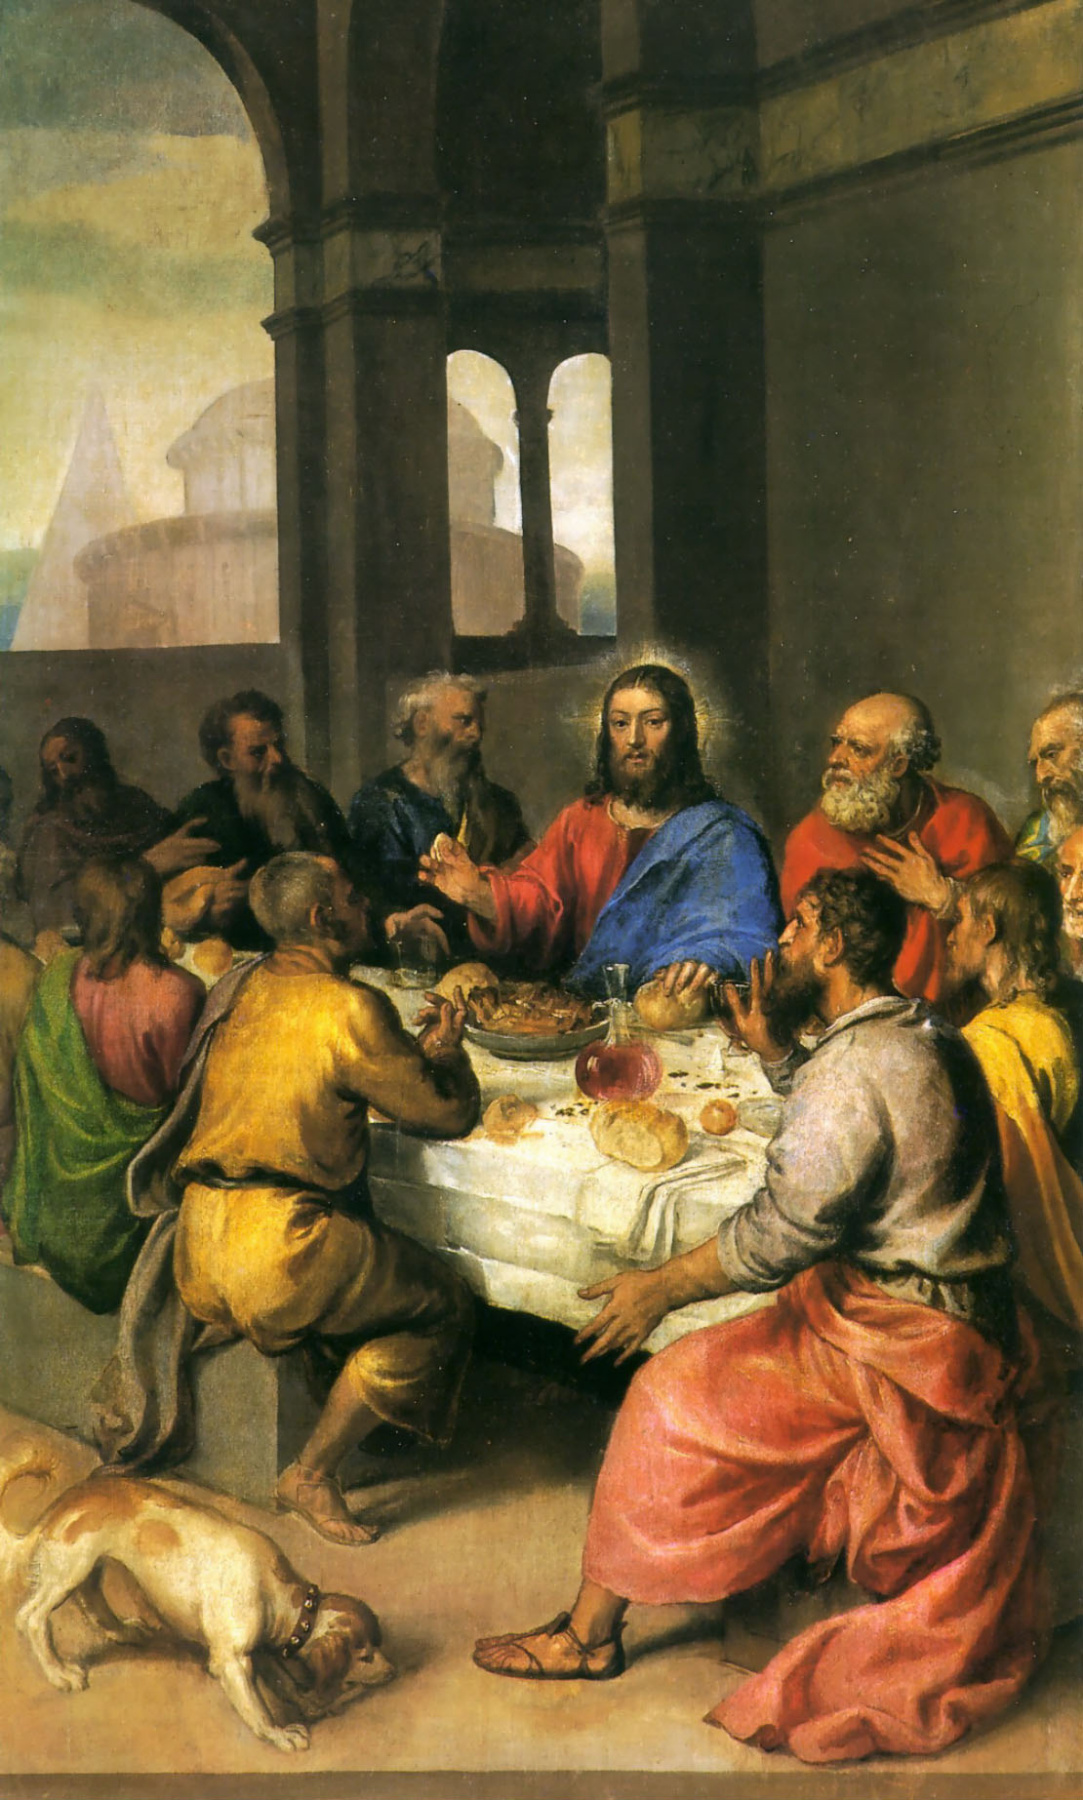 Titian Vecelli. The last supper